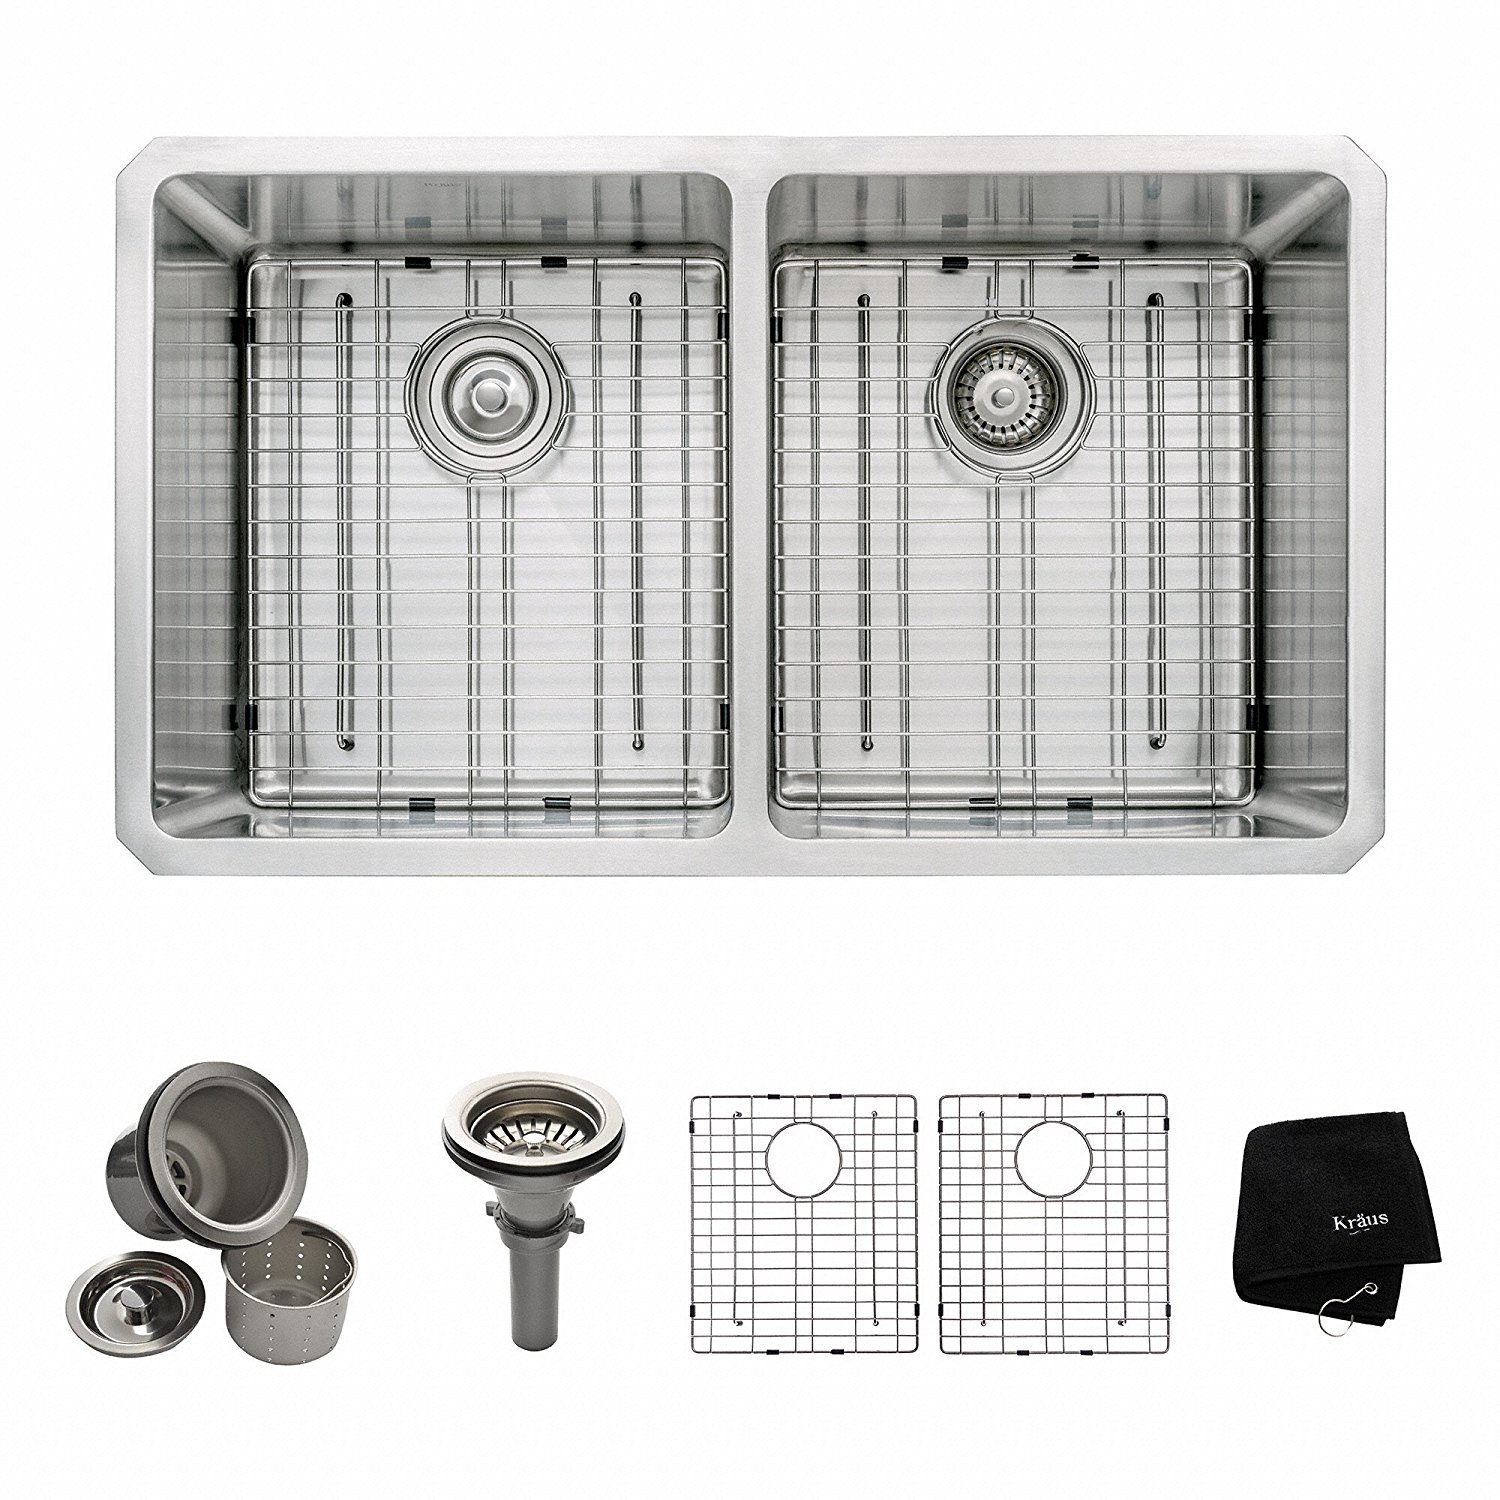 5 Best double bowl kitchen sinks reviews-ultimate guide 2017